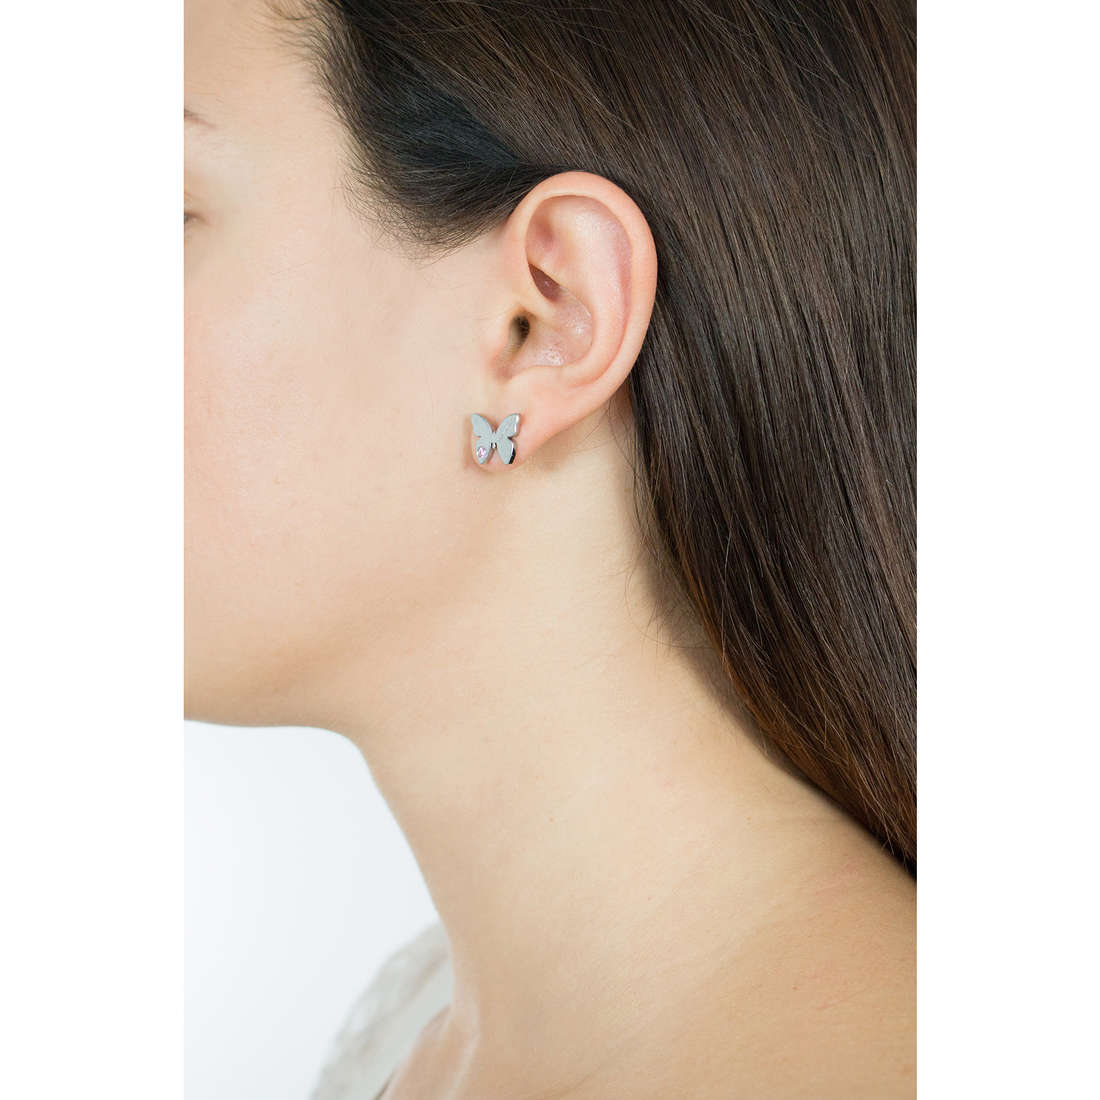 Nomination boucles d'oreille Butterfly femme 021308/002 photo wearing